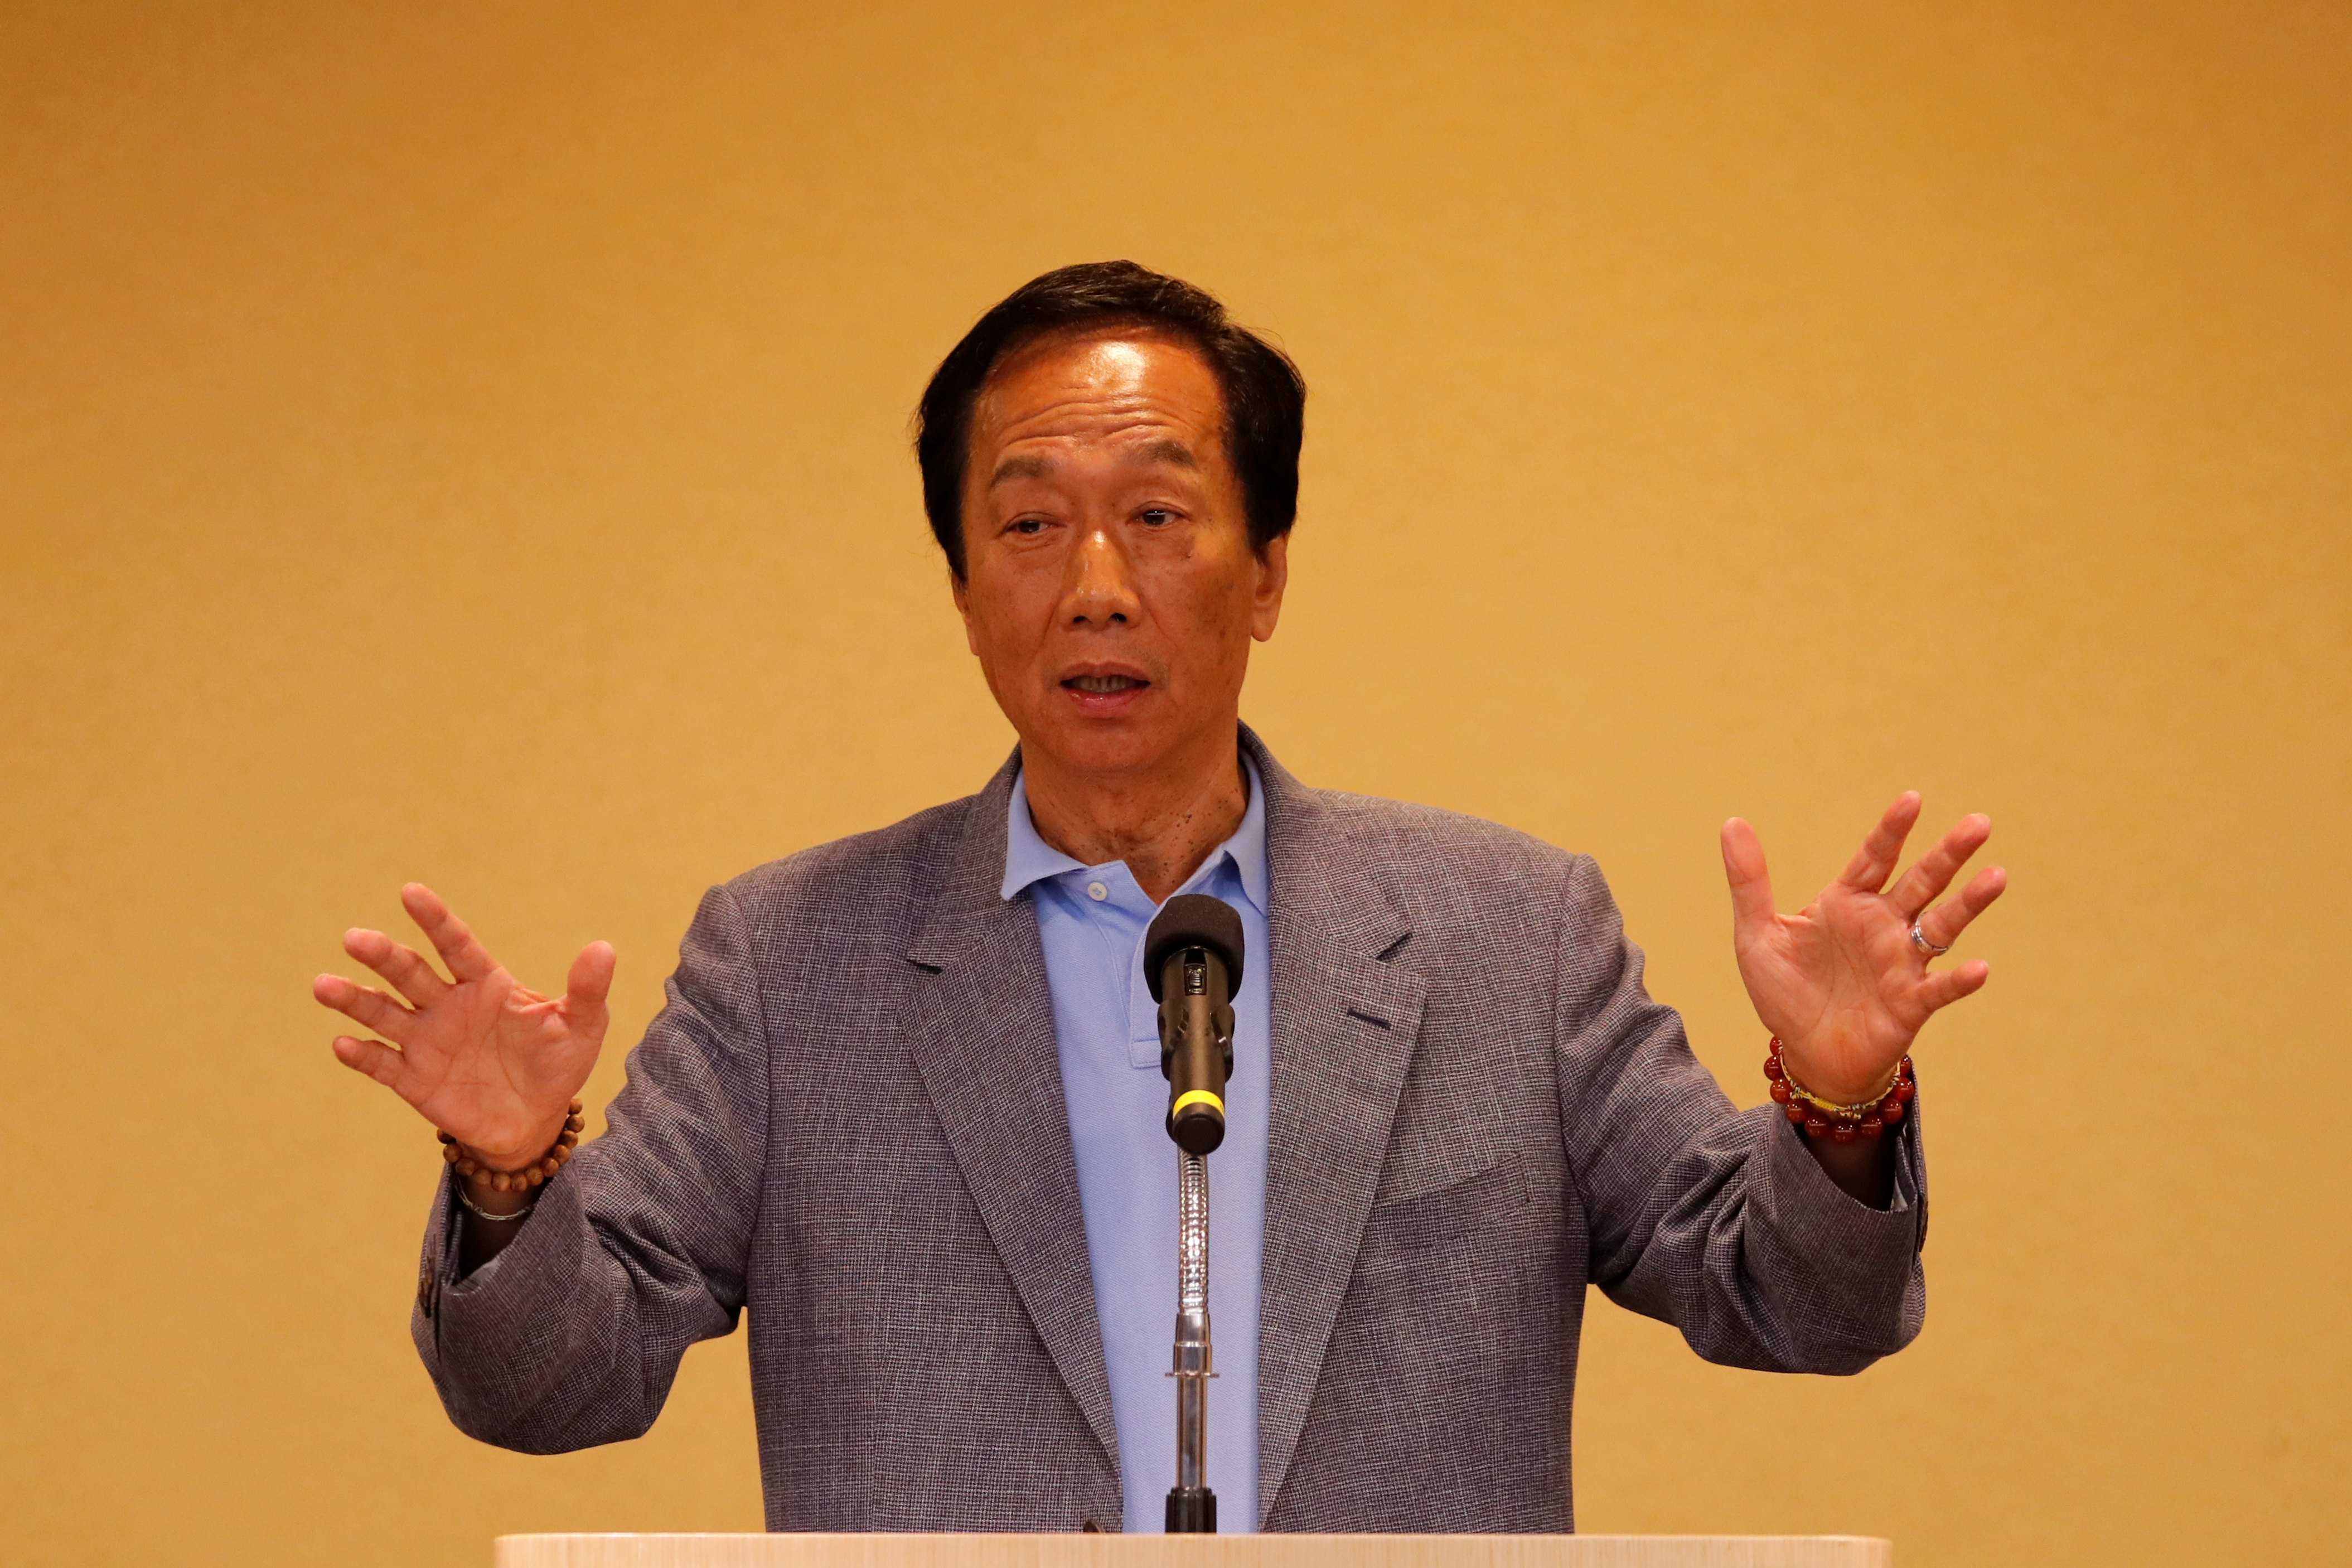 Foxconn Technology Group founder and chairman, Terry Gou, speaks during a news conference after his trip to the U.S., in Taipei, Taiwan May 6, 2019. REUTERS/Tyrone Siu